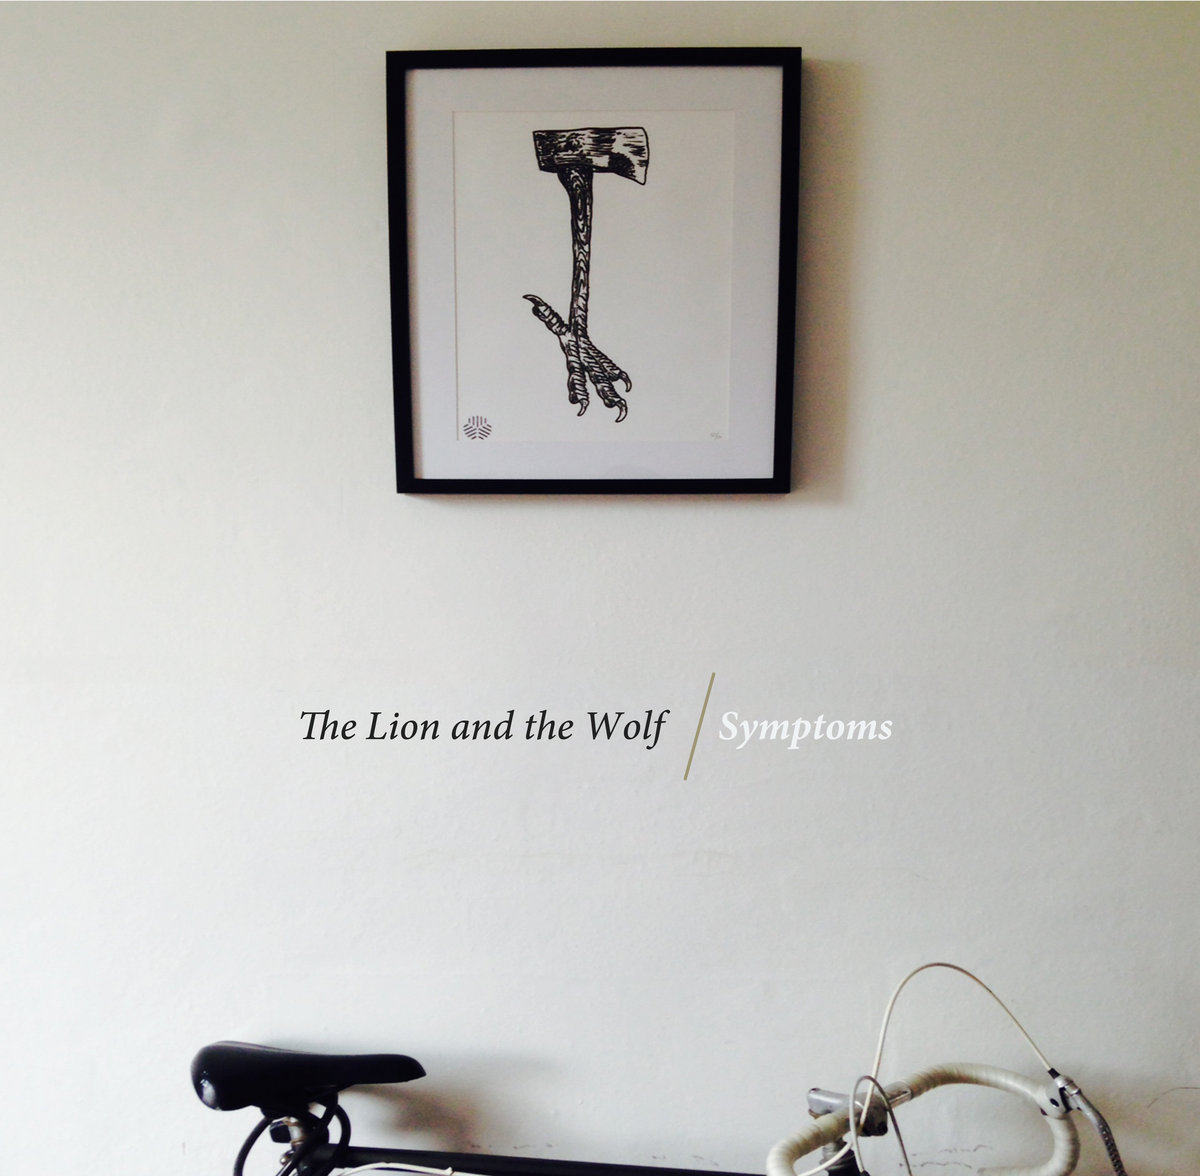 Symptoms | The Lion and the Wolf